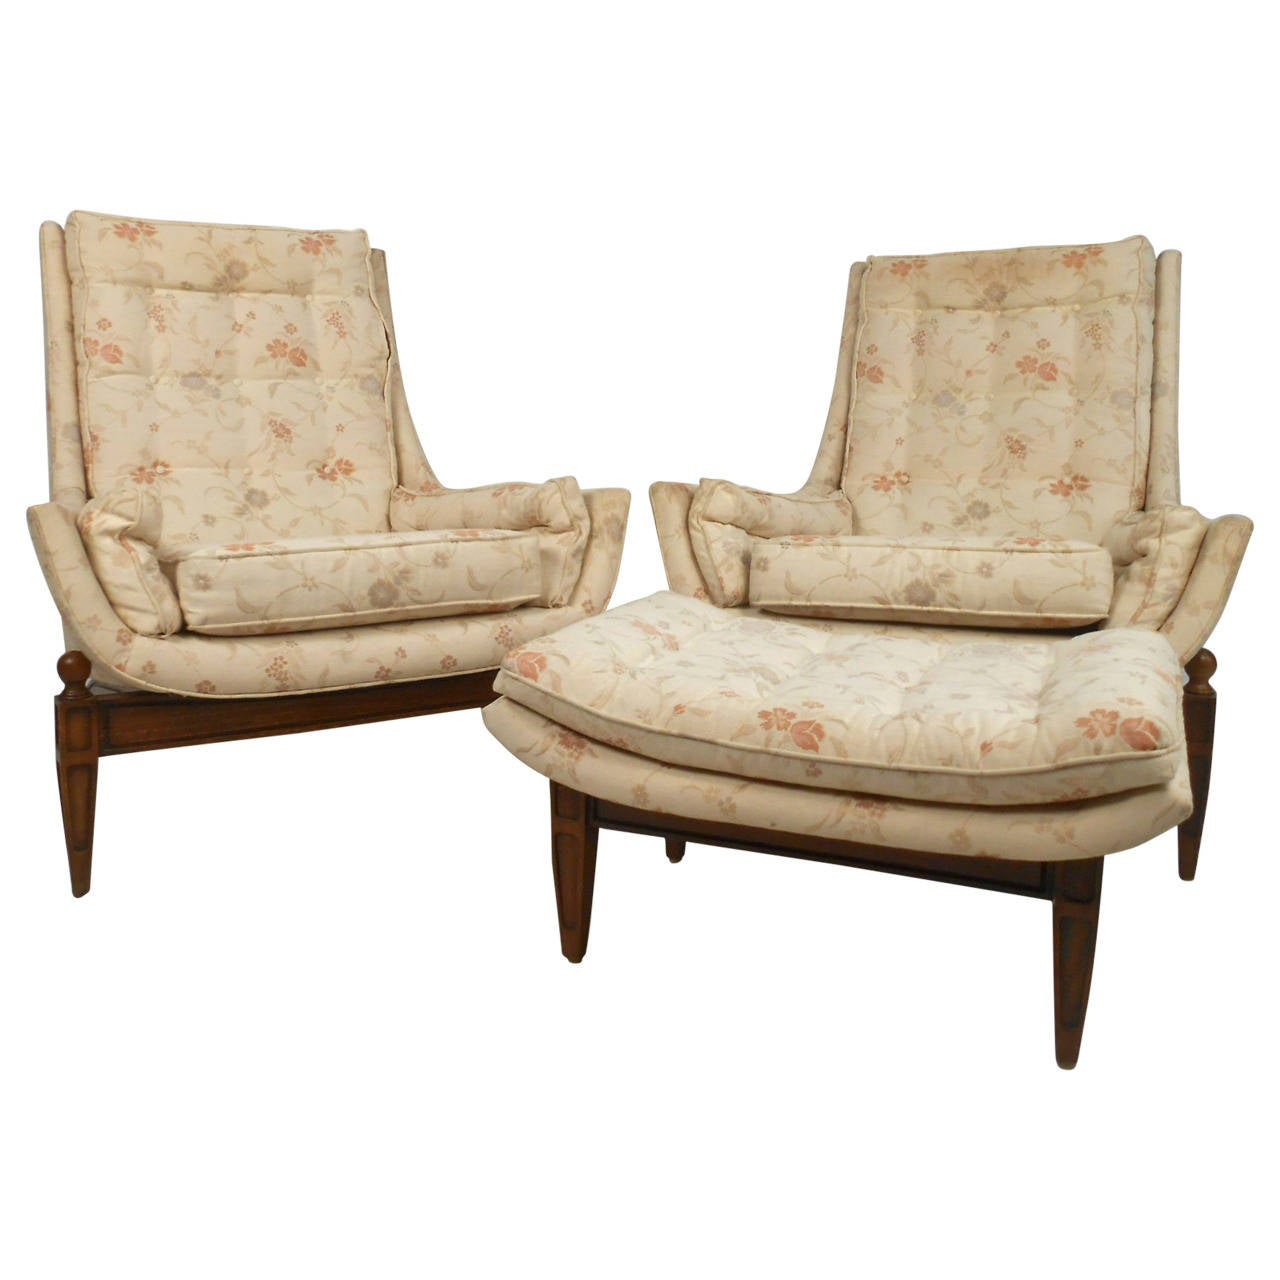 Pair of Mid-Century Modern Sculptural Lounge Chairs with Ottoman